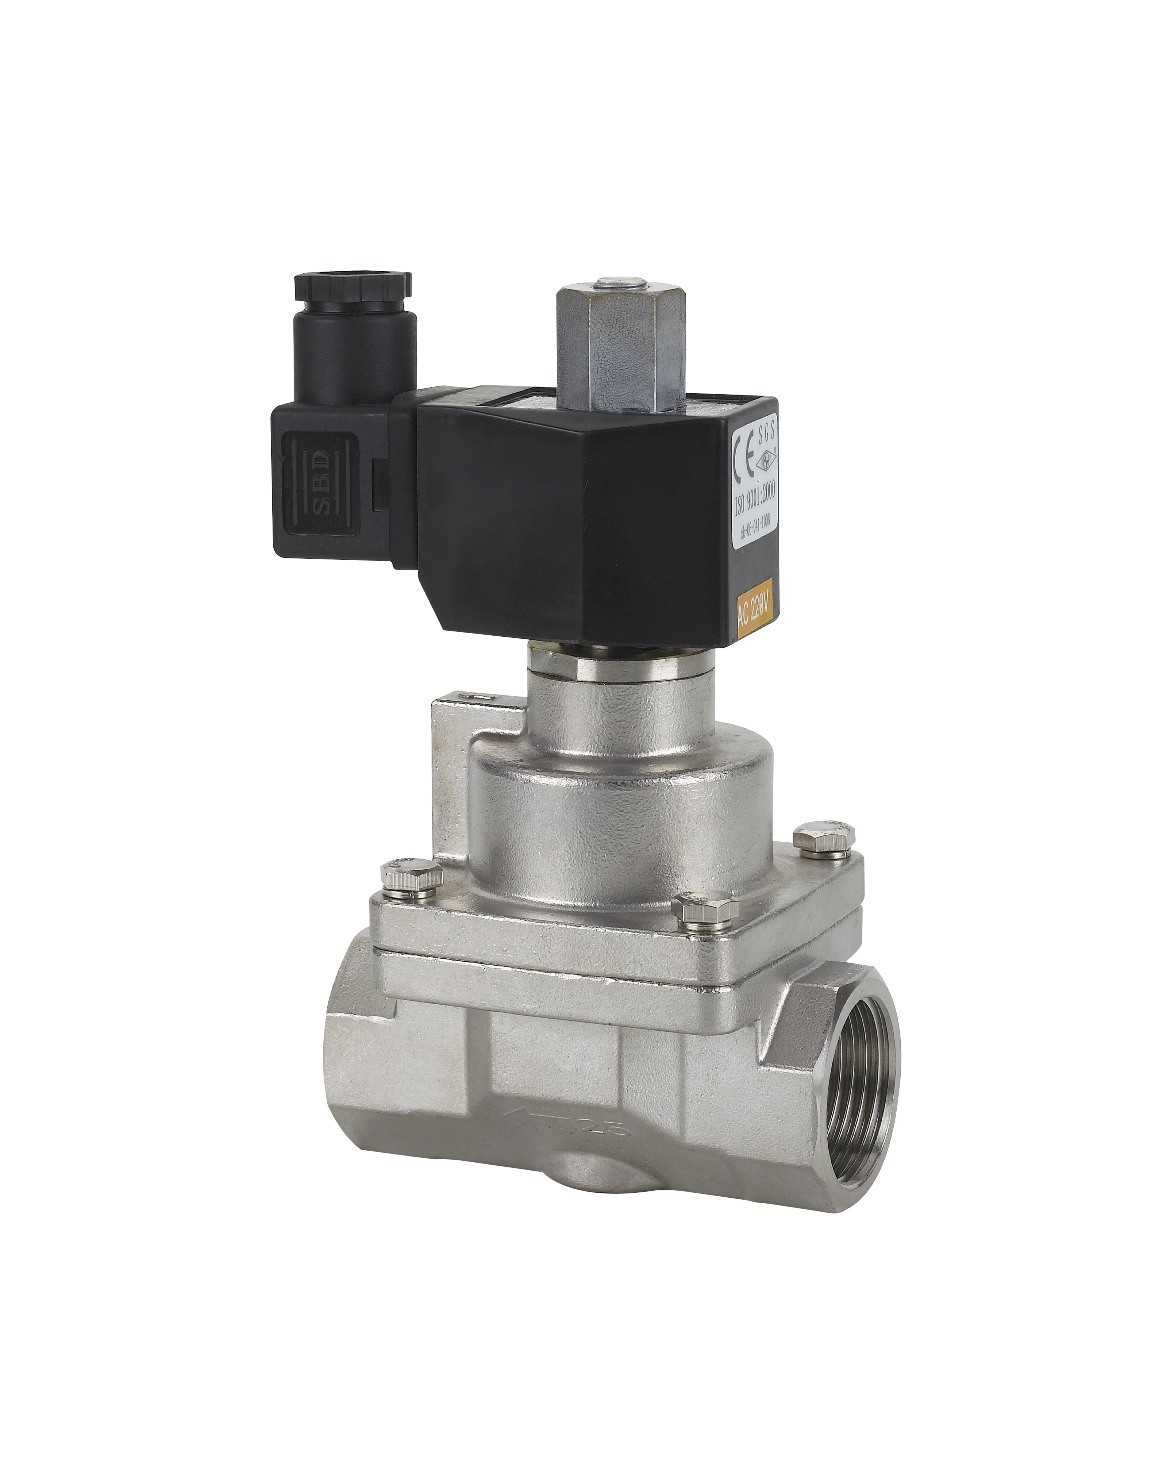 PS-J Series Steam Solenoid Valve